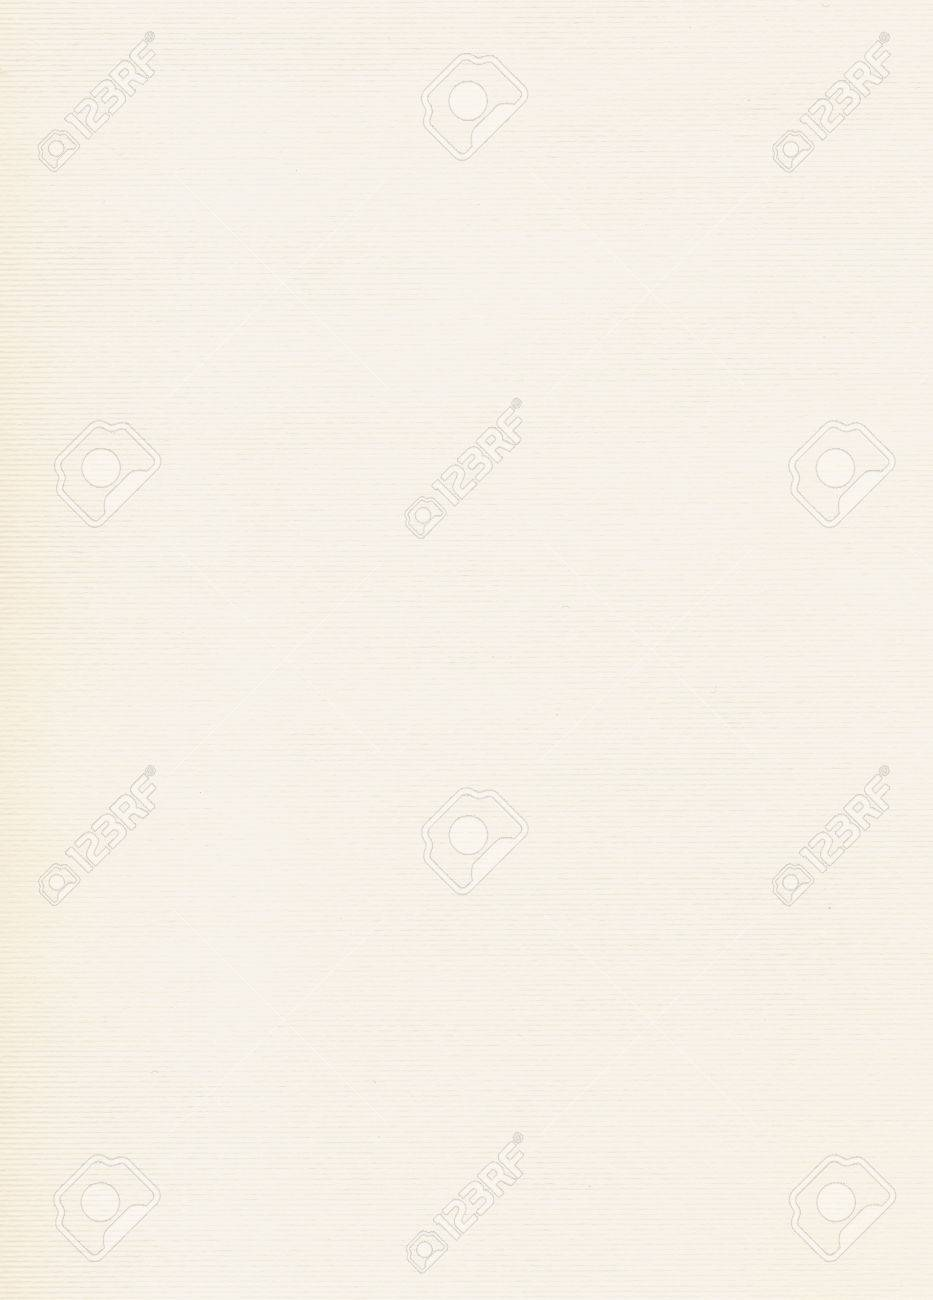 Off White Paper Texture With Watermark Useful As A Background Stock Photo